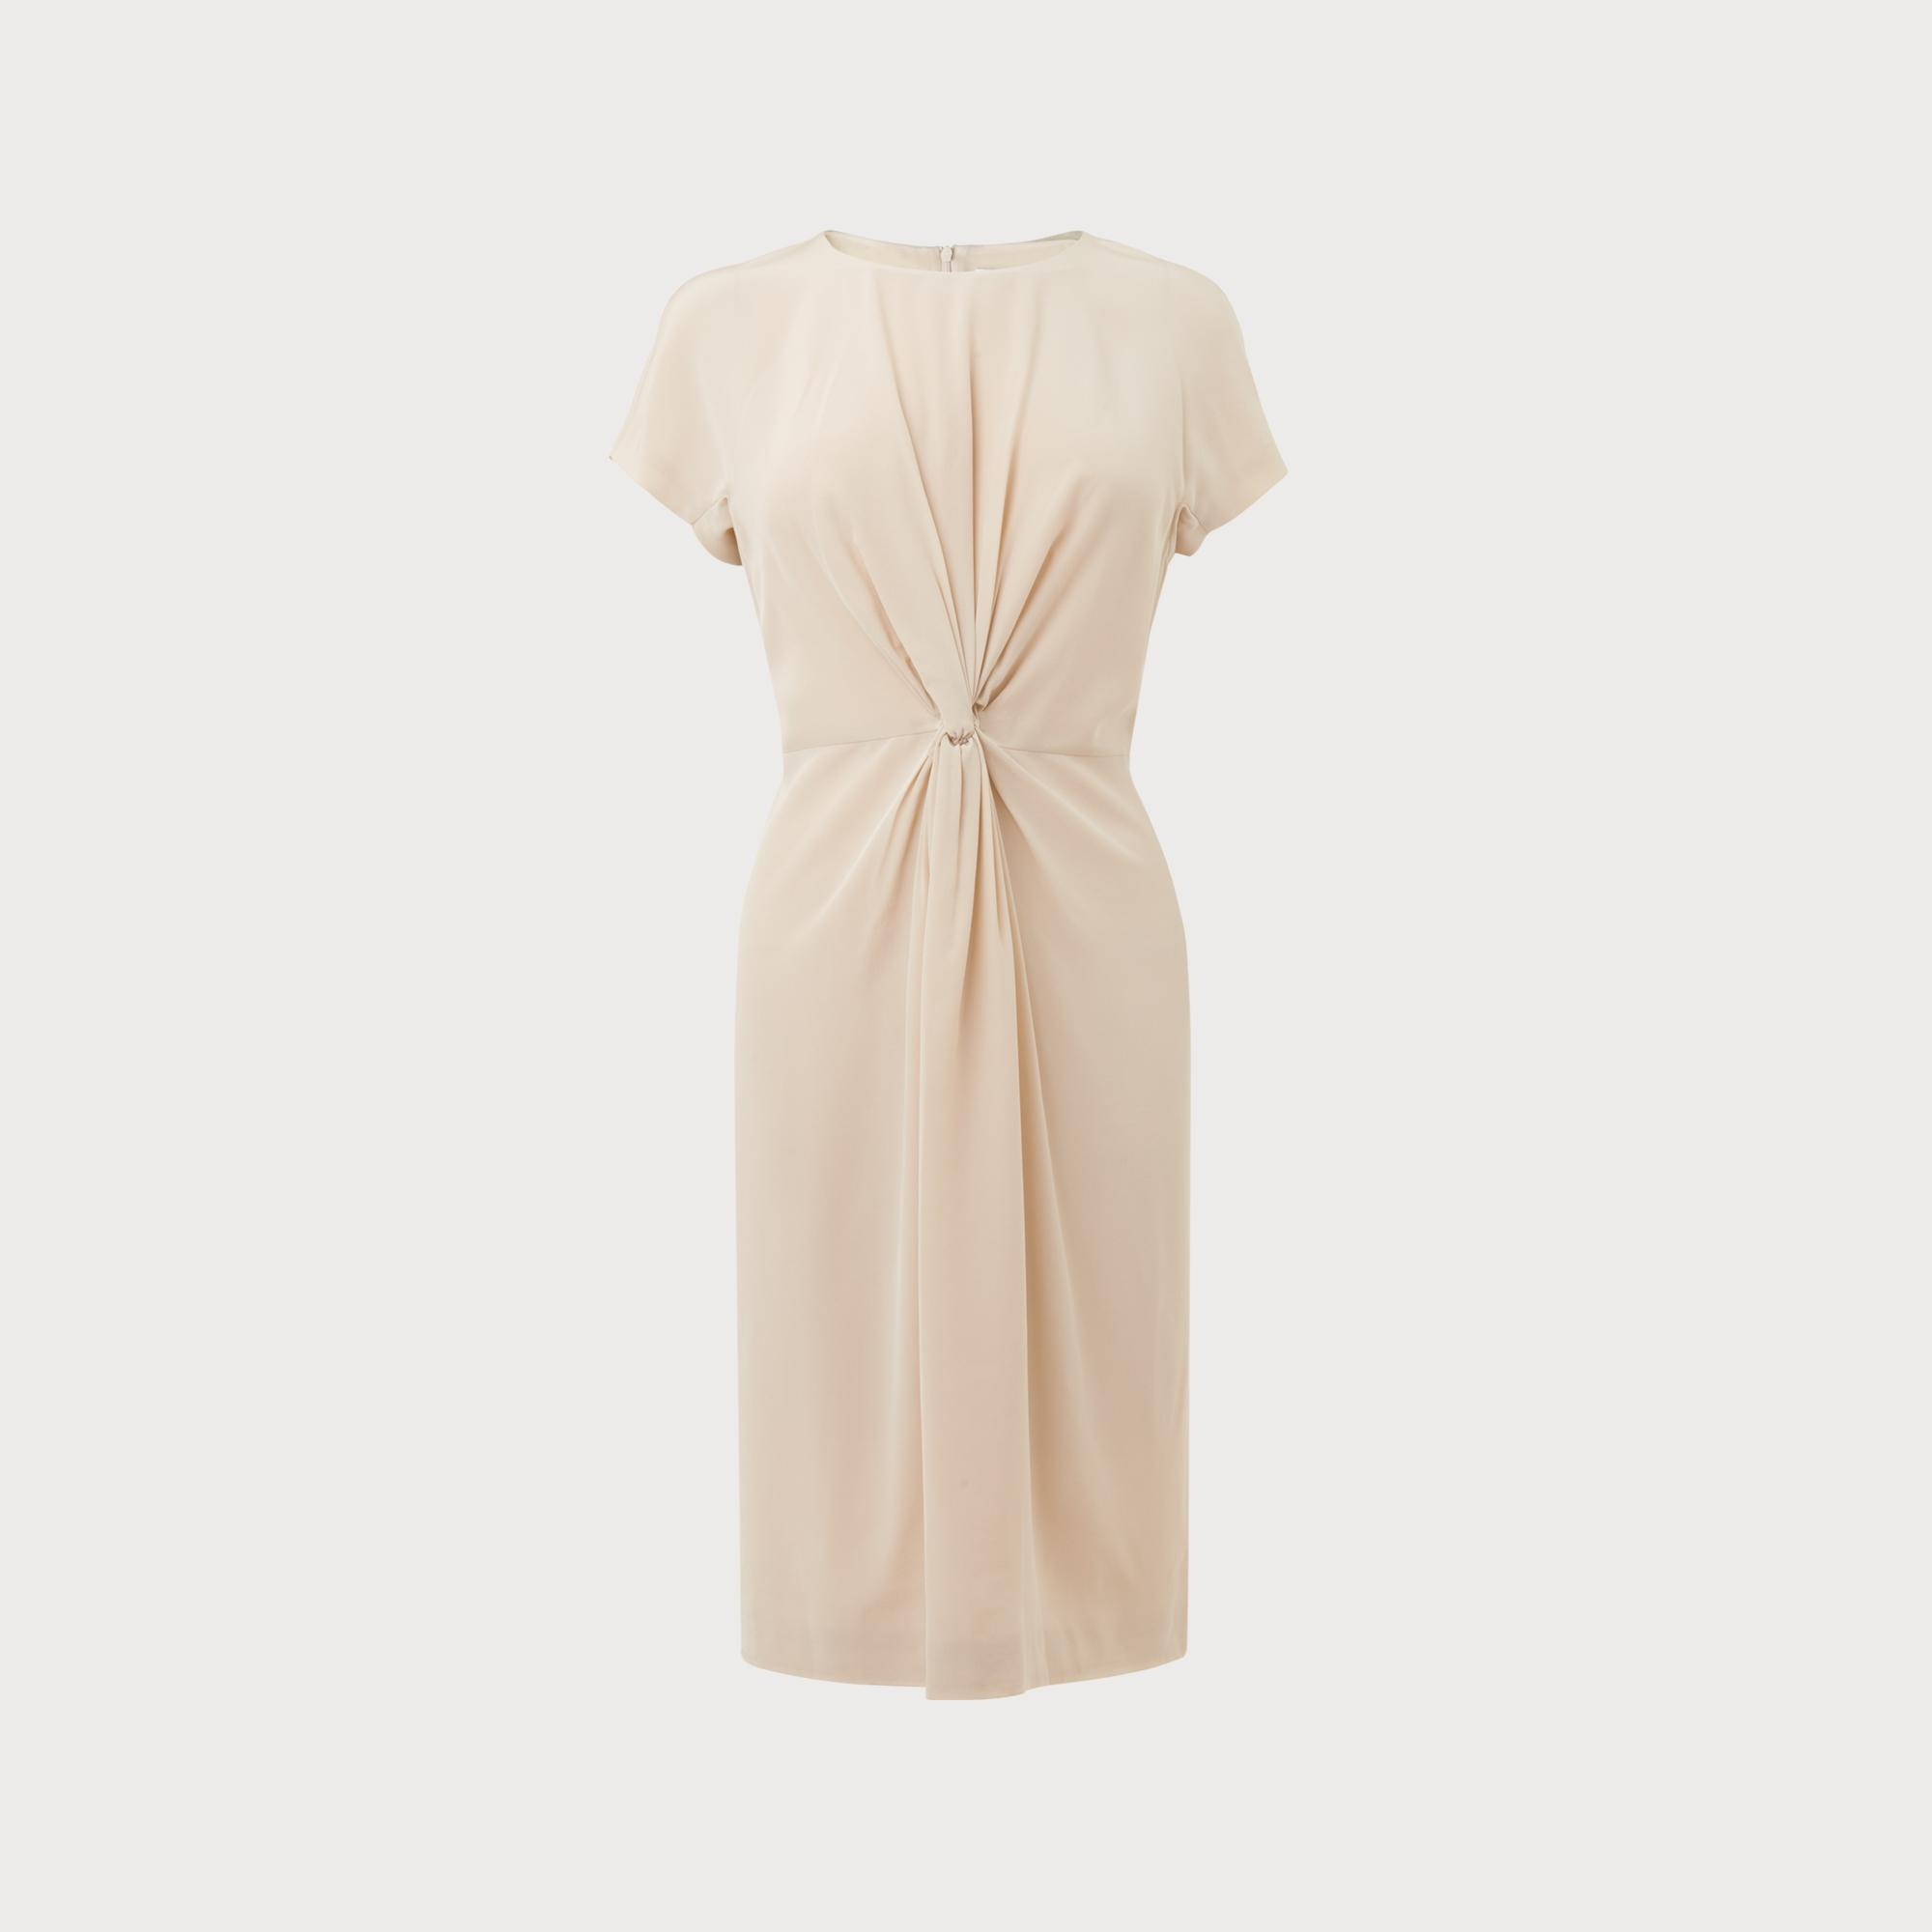 Milas Cream Silk Dress